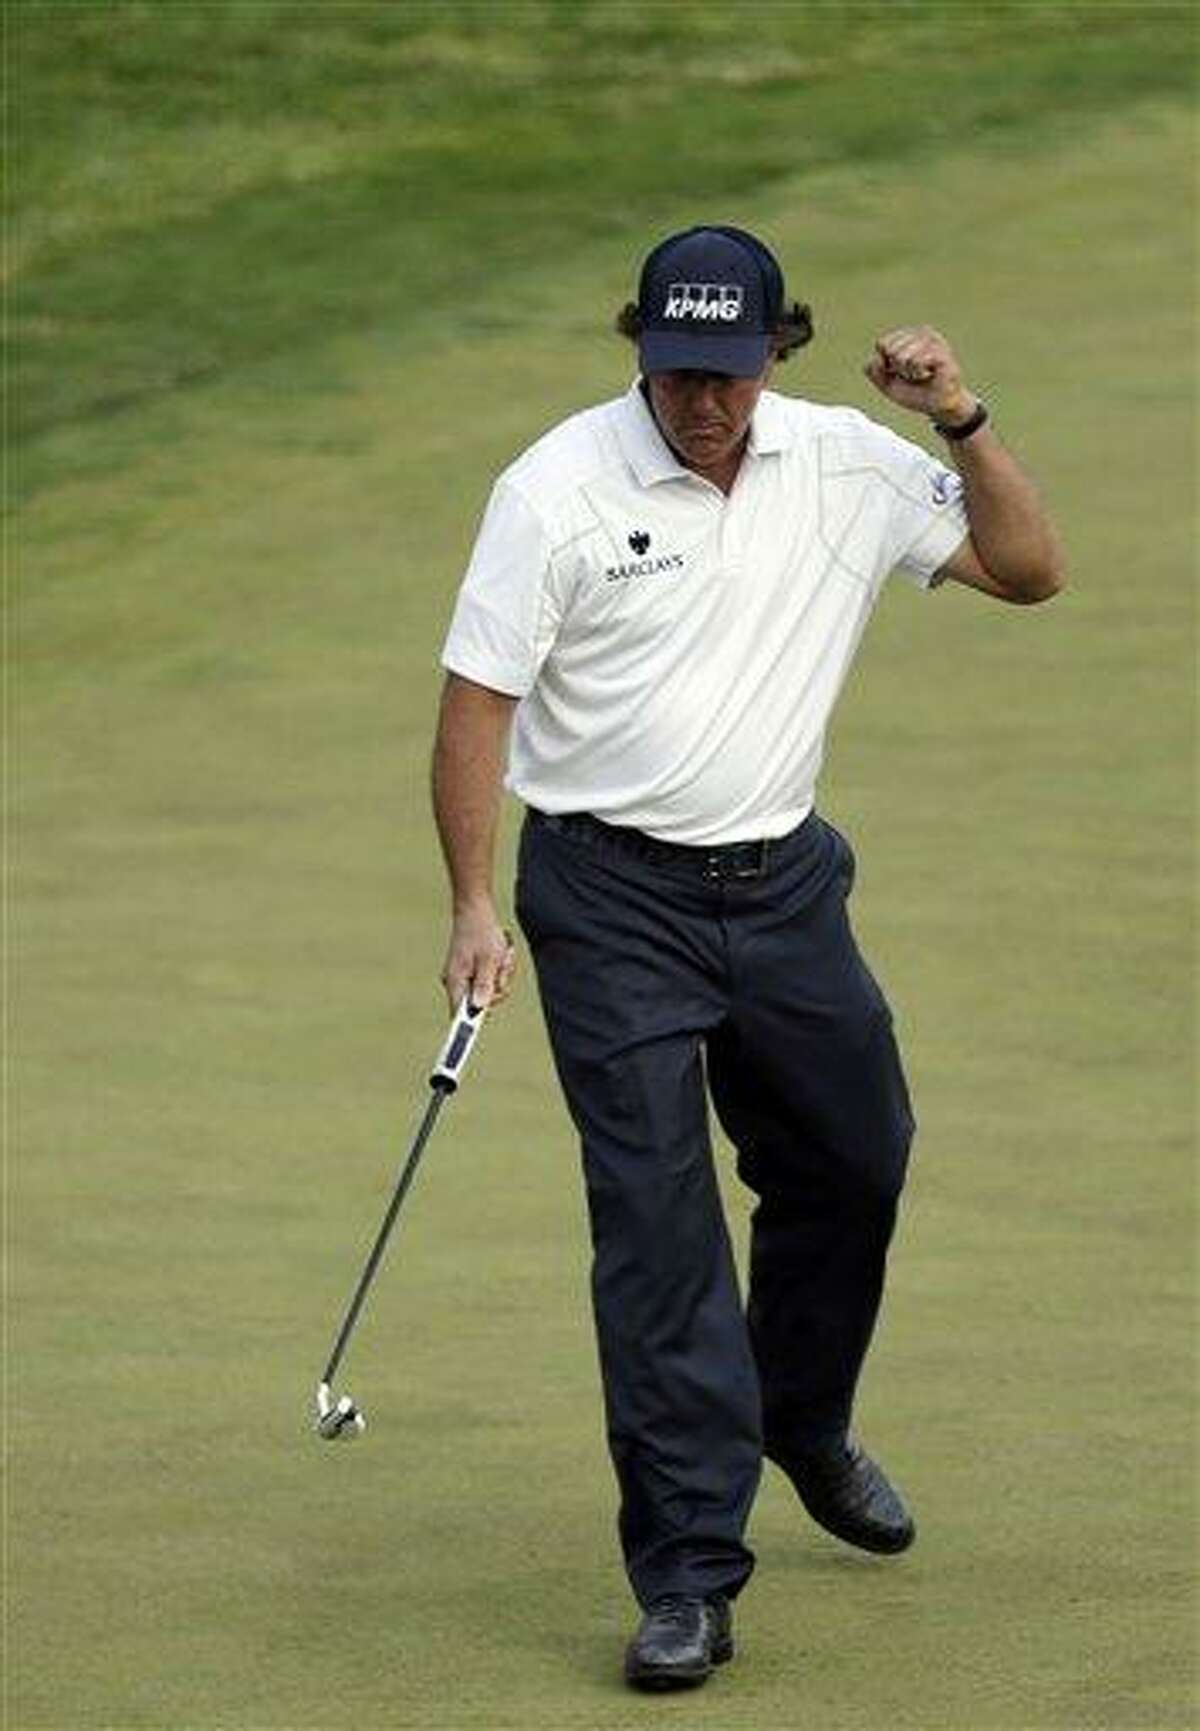 Phil Mickelson reacts after putting on the 17th hole during the third round of the U.S. Open golf tournament at Merion Golf Club, Saturday, June 15, 2013, in Ardmore, Pa. (AP Photo/Julio Cortez)